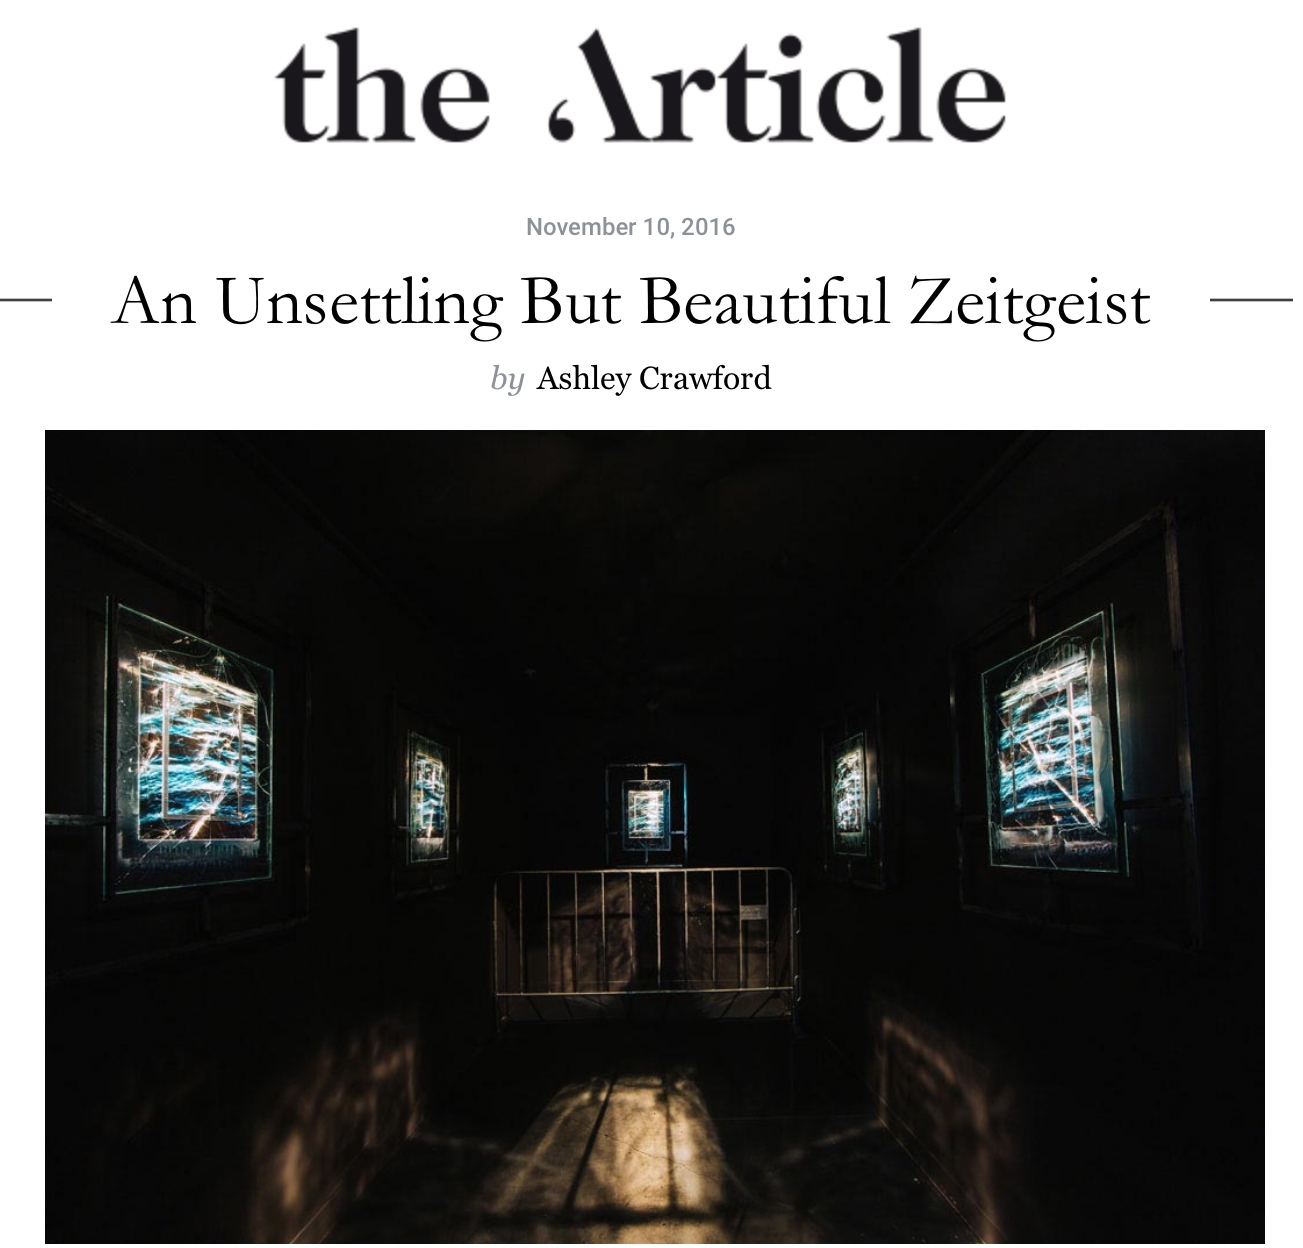 the article,  An Unsettling but beautiful zeitgeist . November 10, 2016. Ashley Crawford